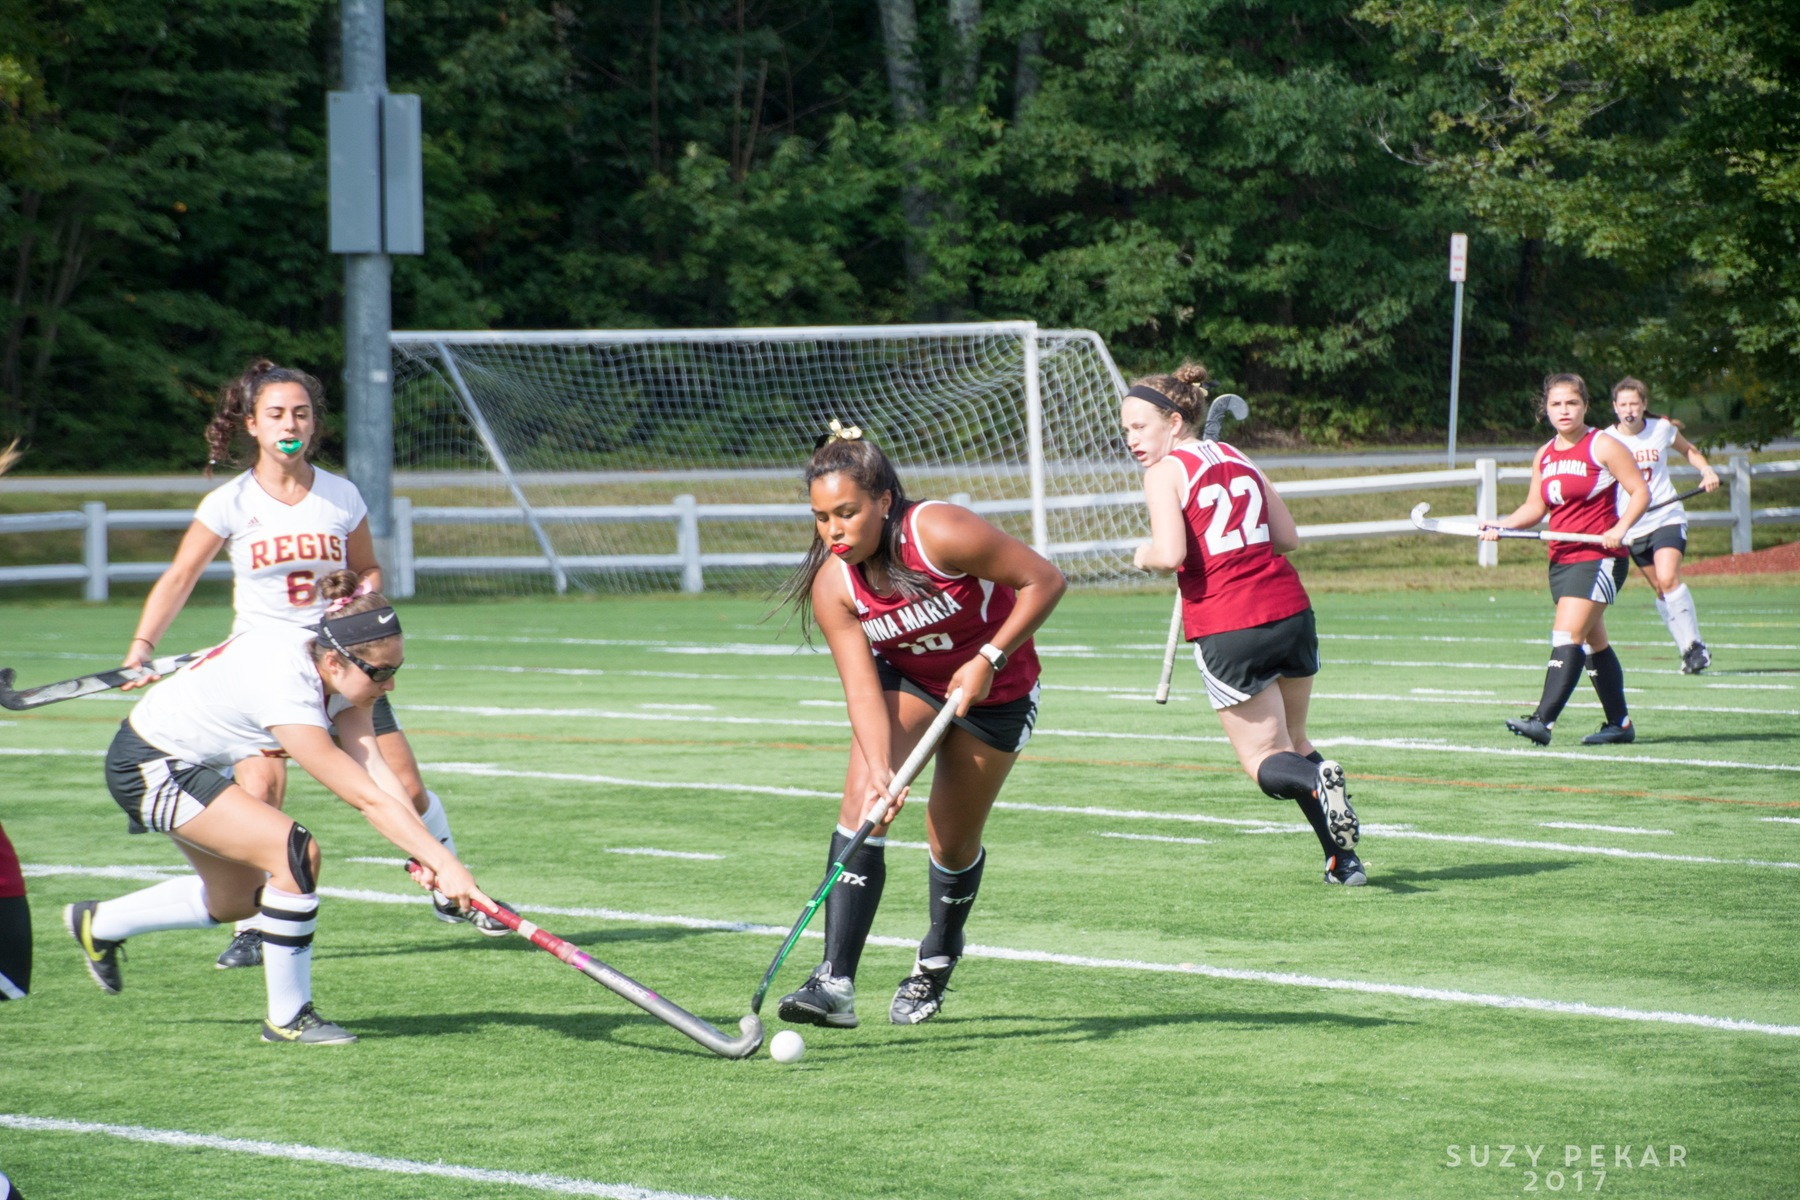 FIELD HOCKEY: Anna Maria blanked by Bridgewater State